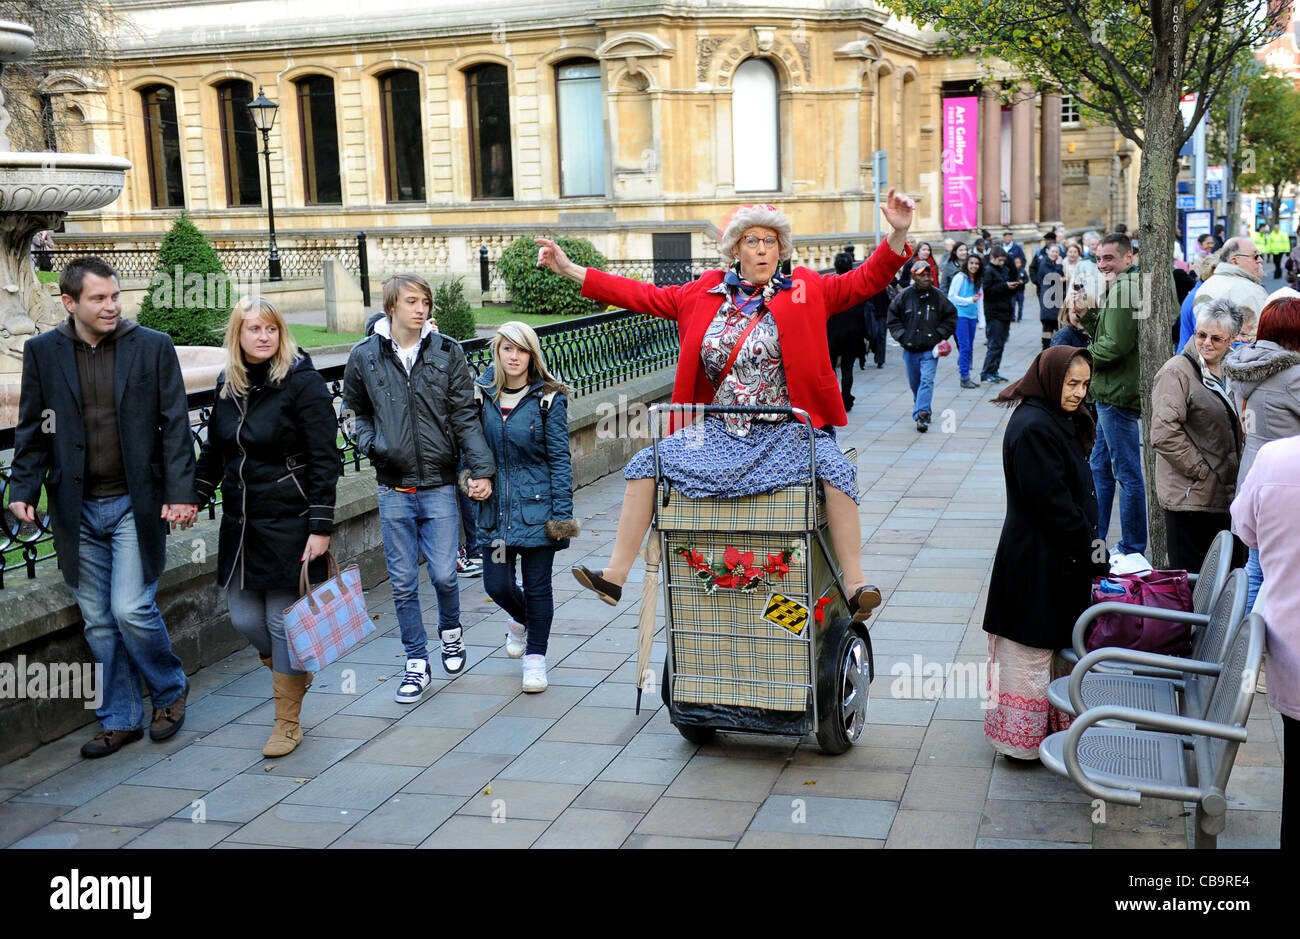 Street entertainer from Granny Turismo on shopping trolley in Wolverhampton England Uk - Stock Image